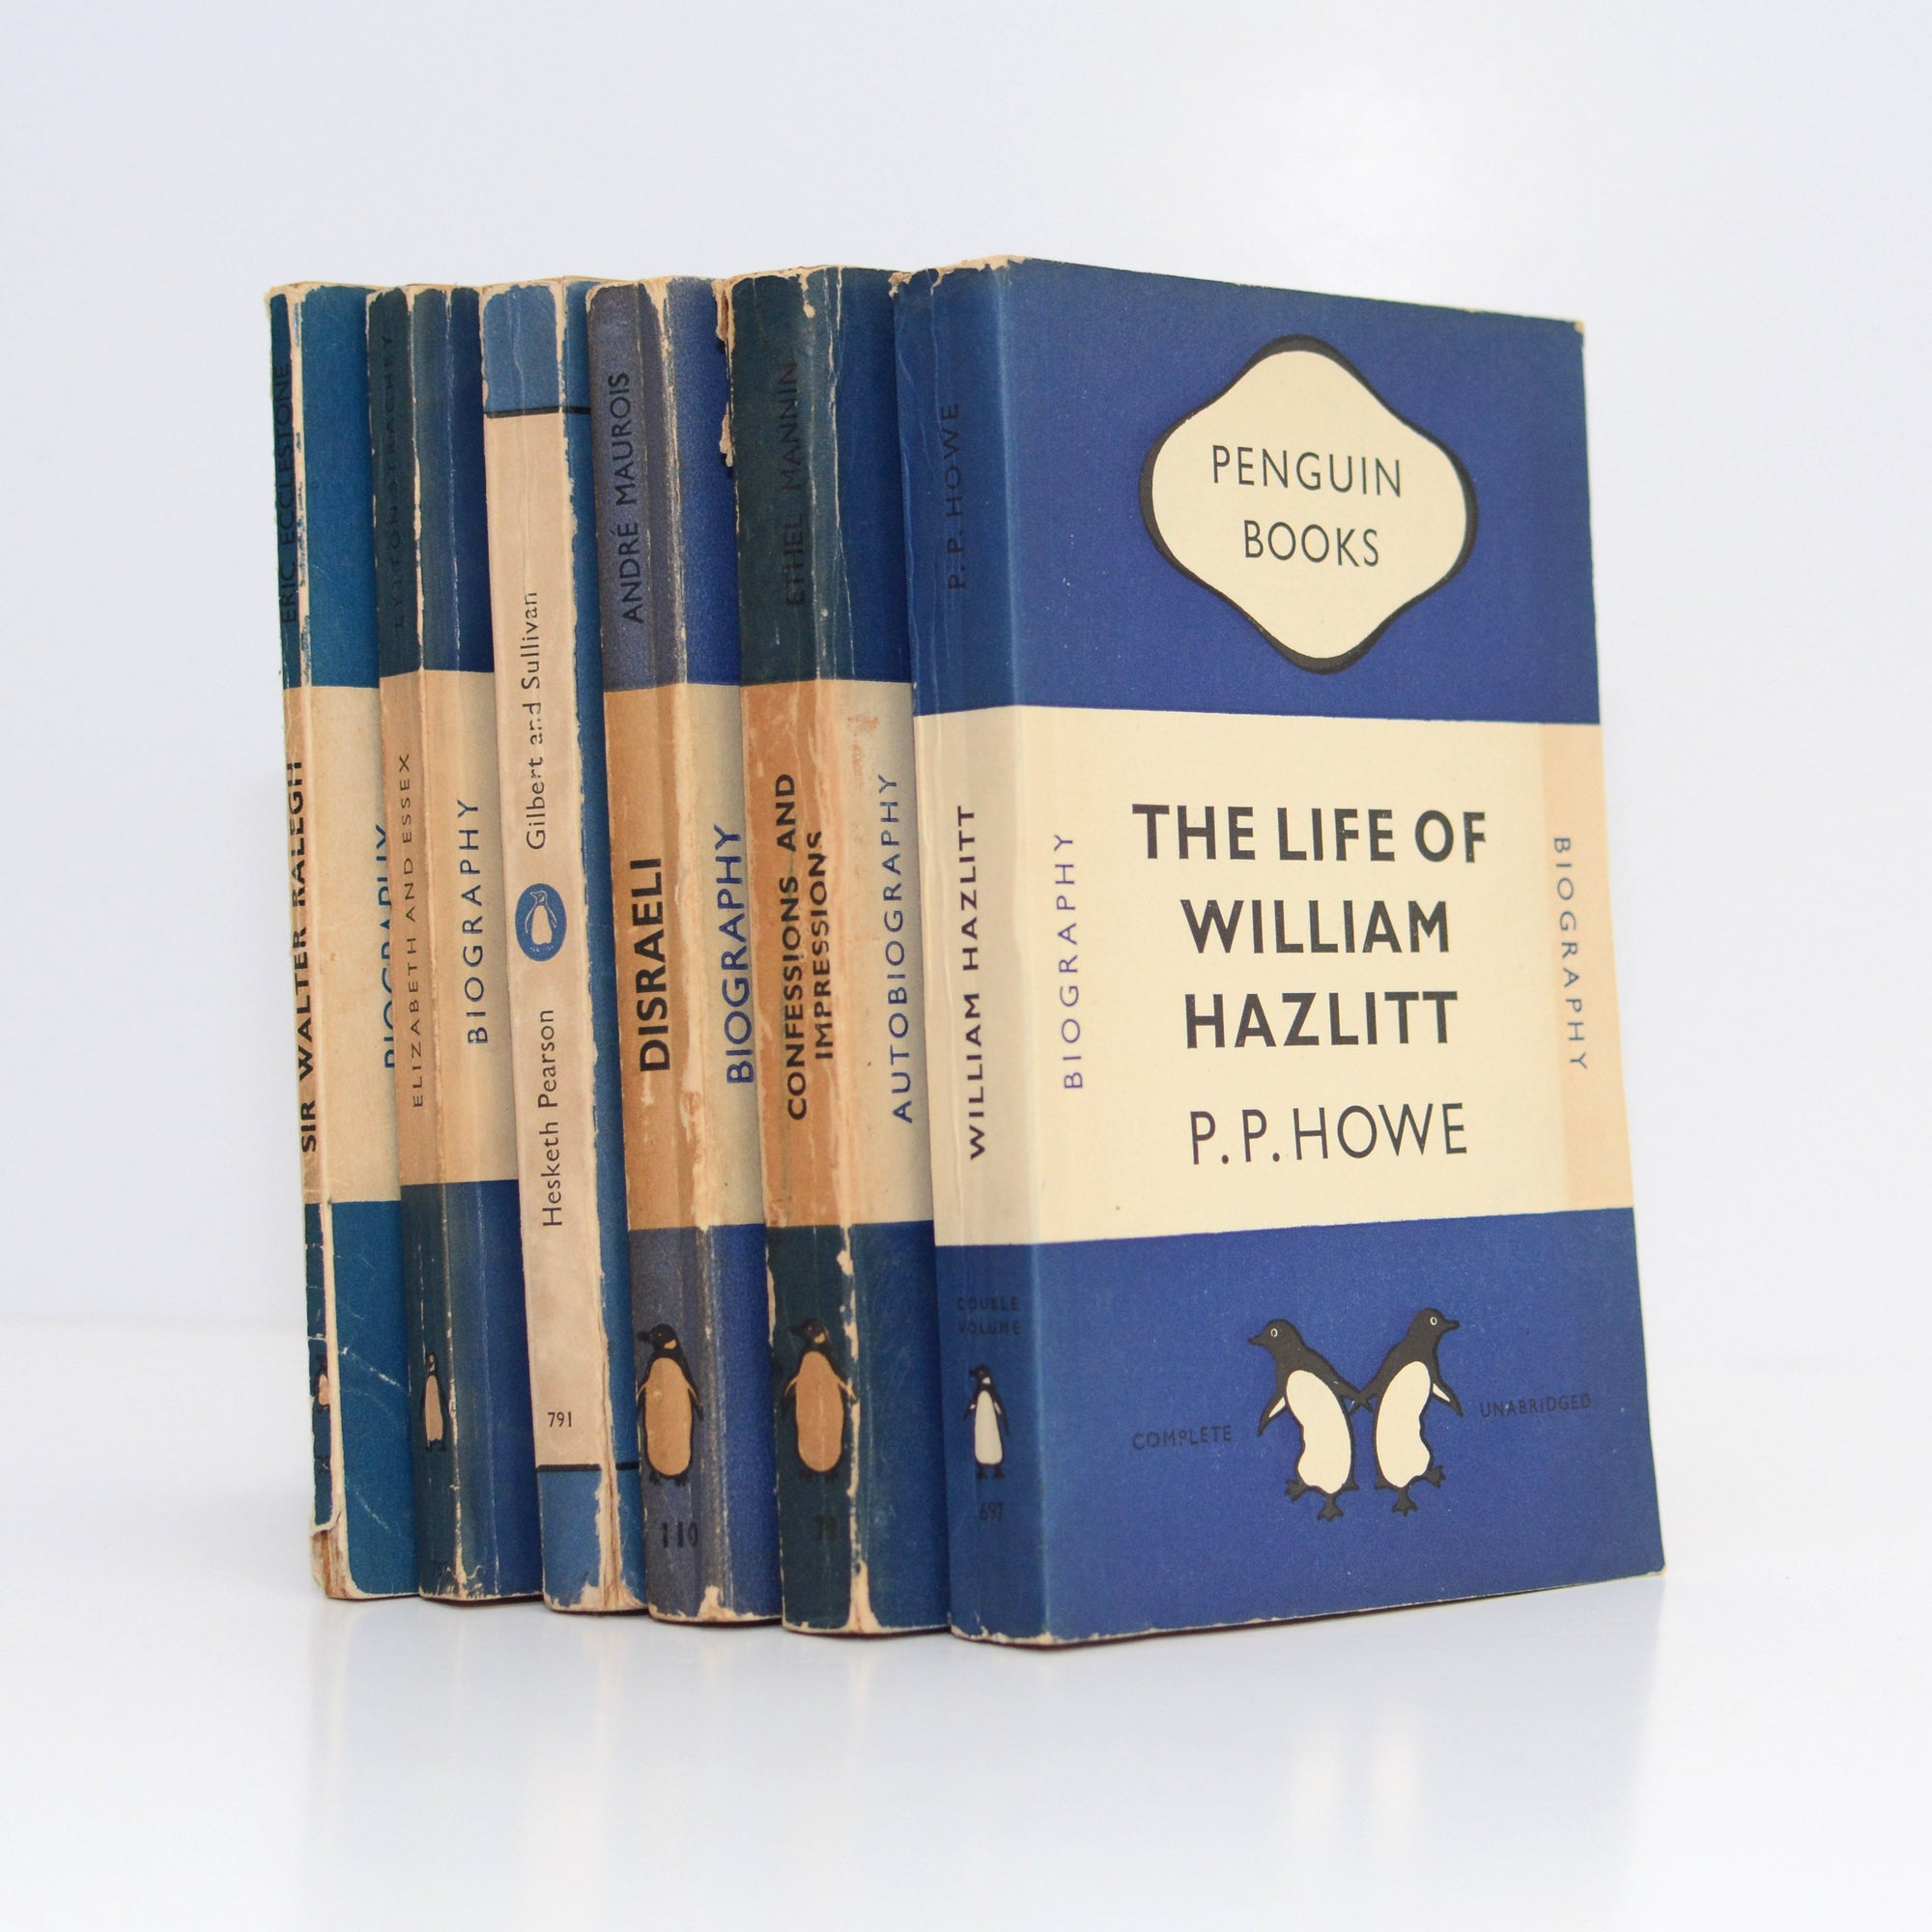 Four Book Collection of Dark Blue Vintage Penguins (Biography, Autobiography)